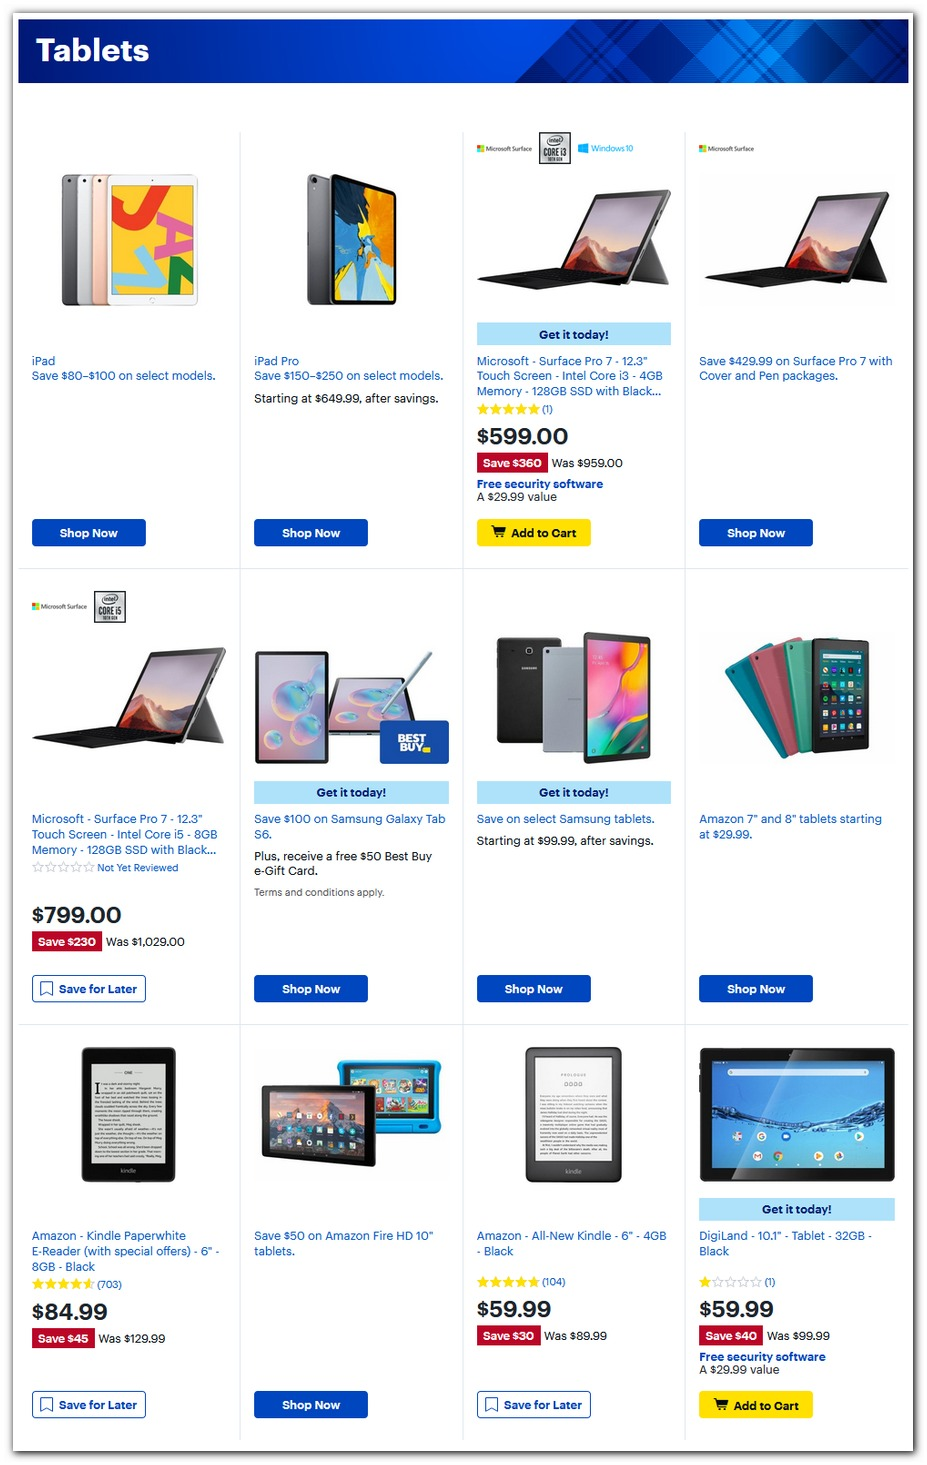 iPads / Surface / Kindle / Tablets